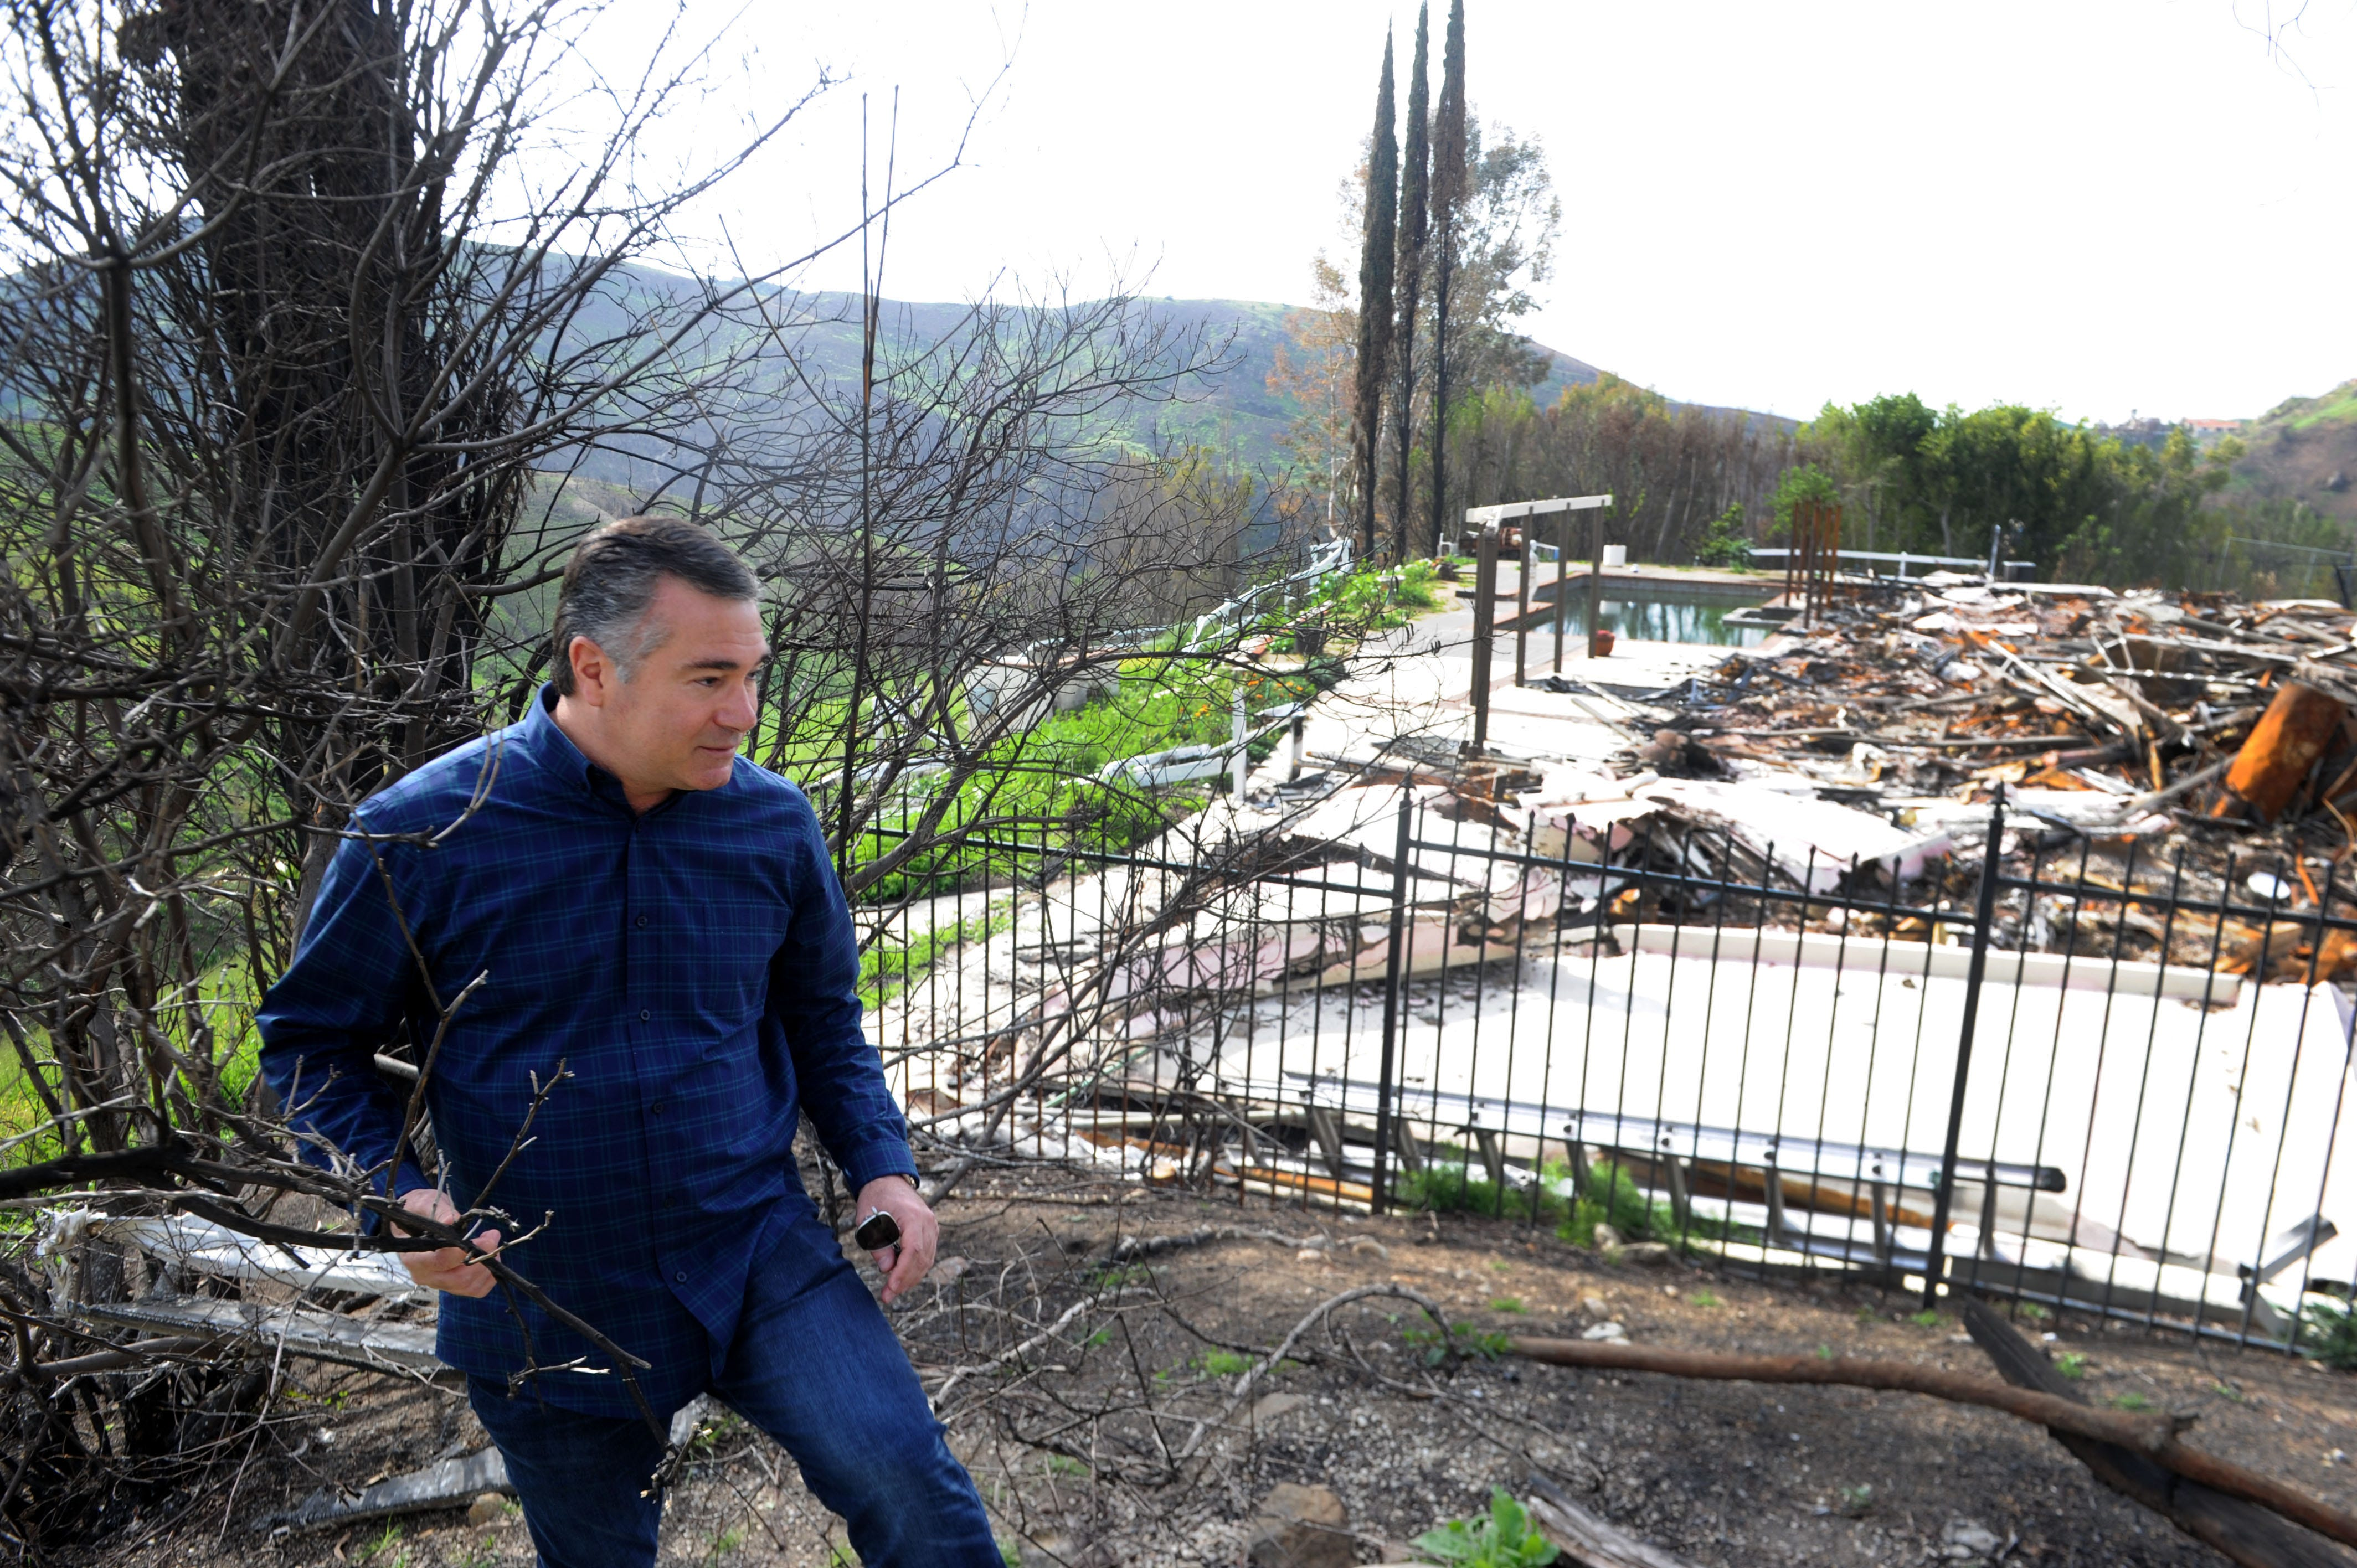 Greg Meneshian walks on the side of his Bell Canyon property. His house and neighbor's house were destroyed by the Woolsey fire in November 2018. The gated community has only one way in and one way out.